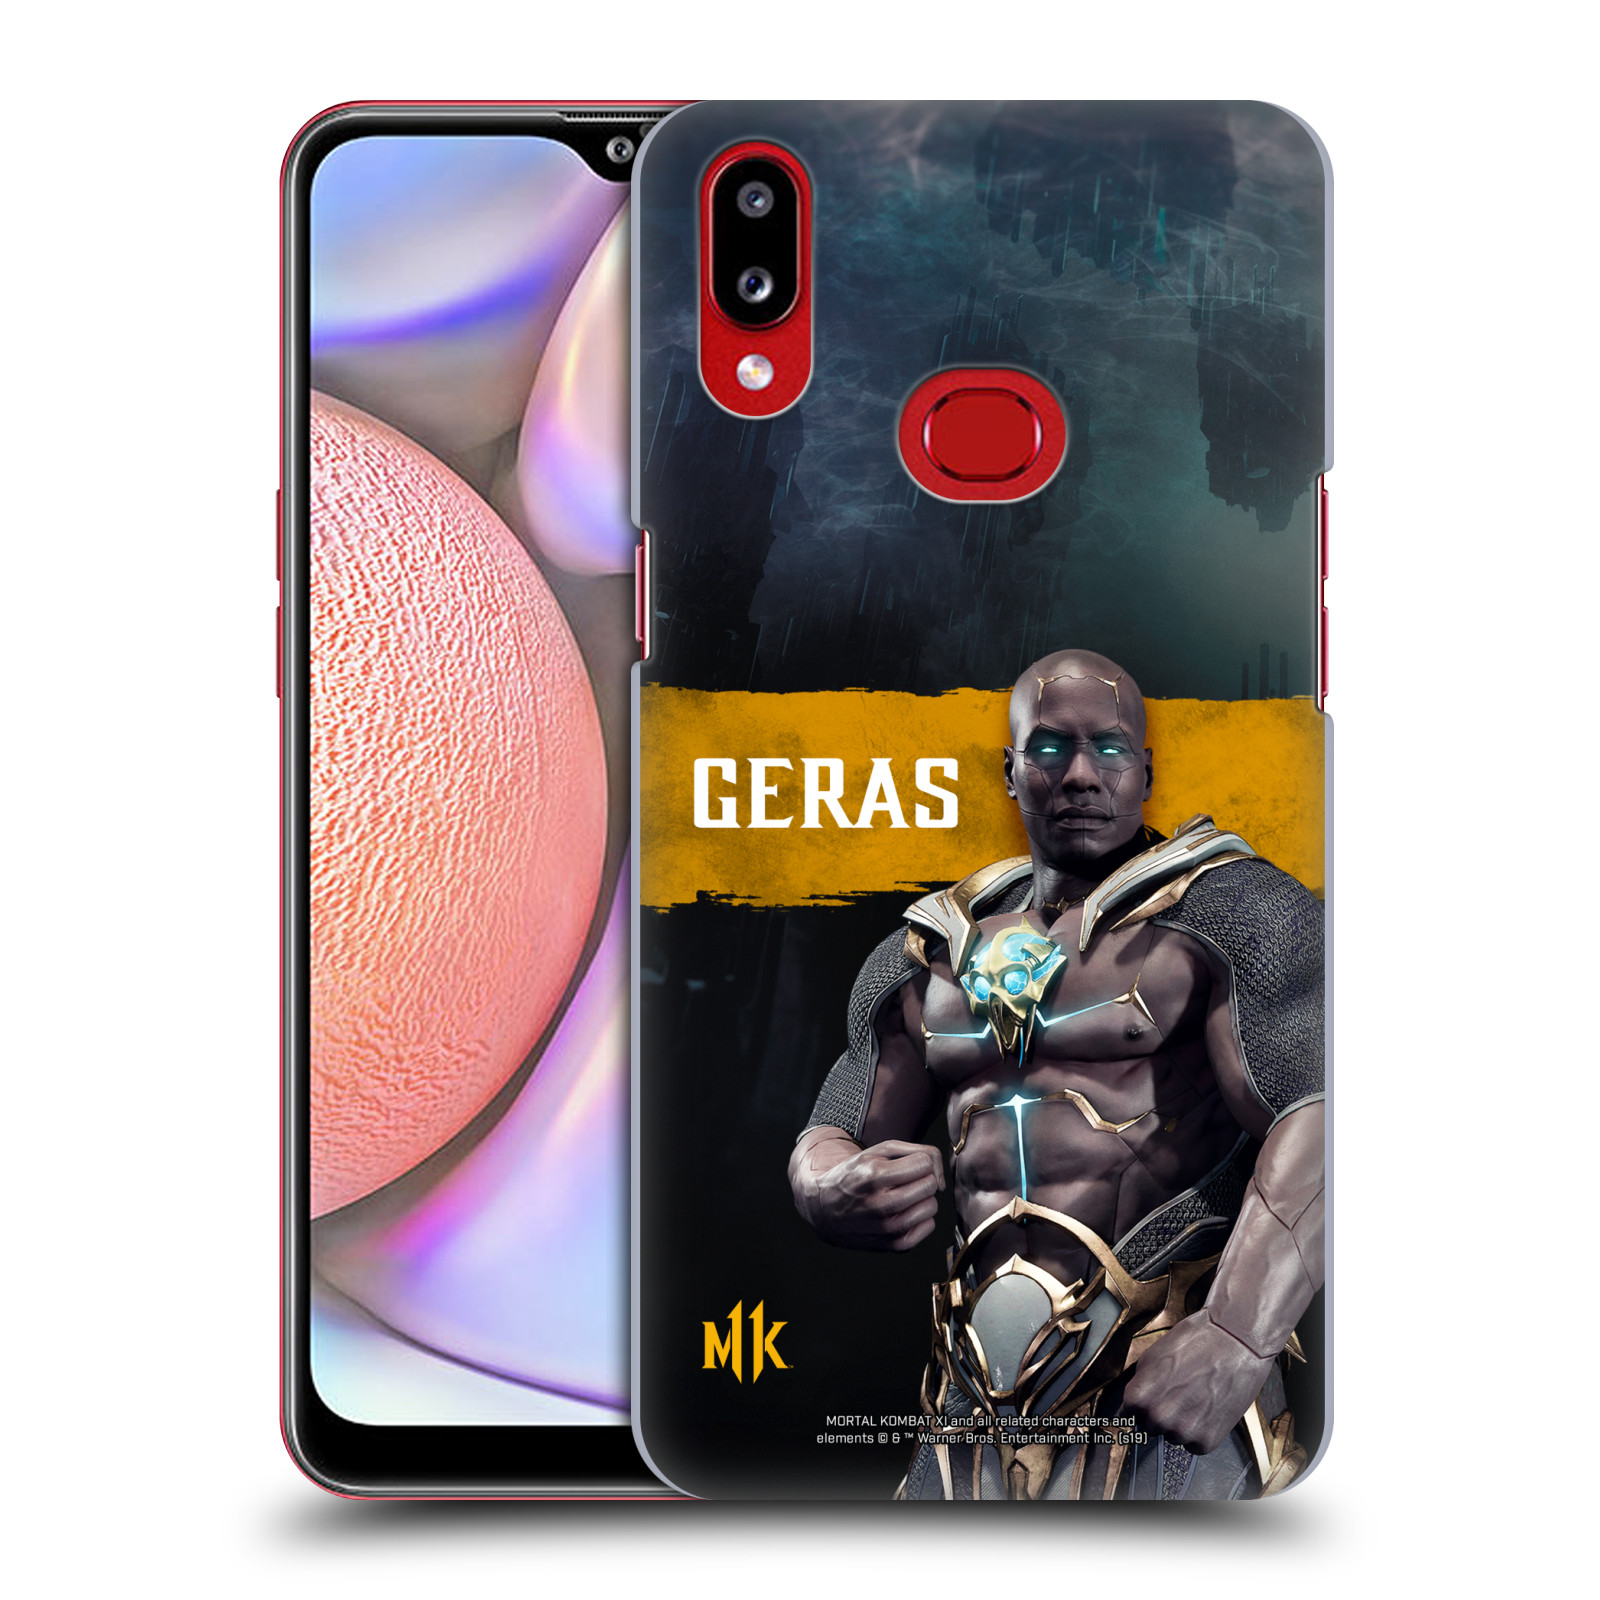 Official Mortal Kombat 11 Characters Geras Case for Samsung Galaxy A10s (2019)